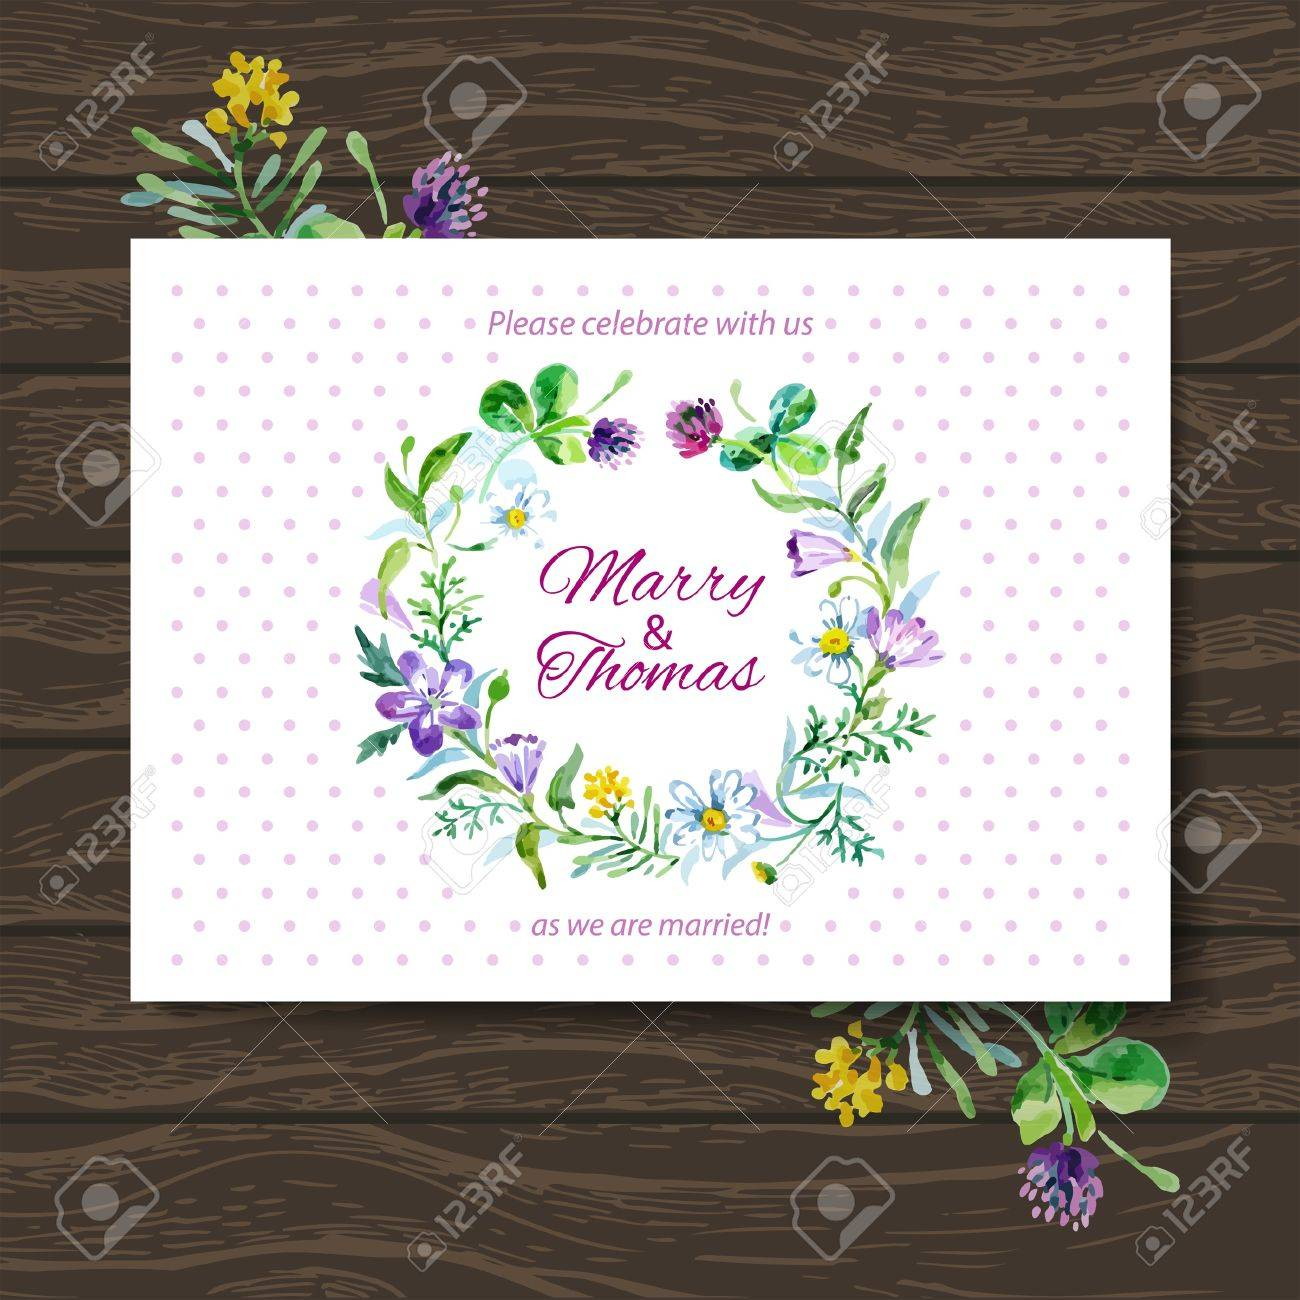 Wedding Invitation Card With Watercolor Floral Bouquet Vector Background